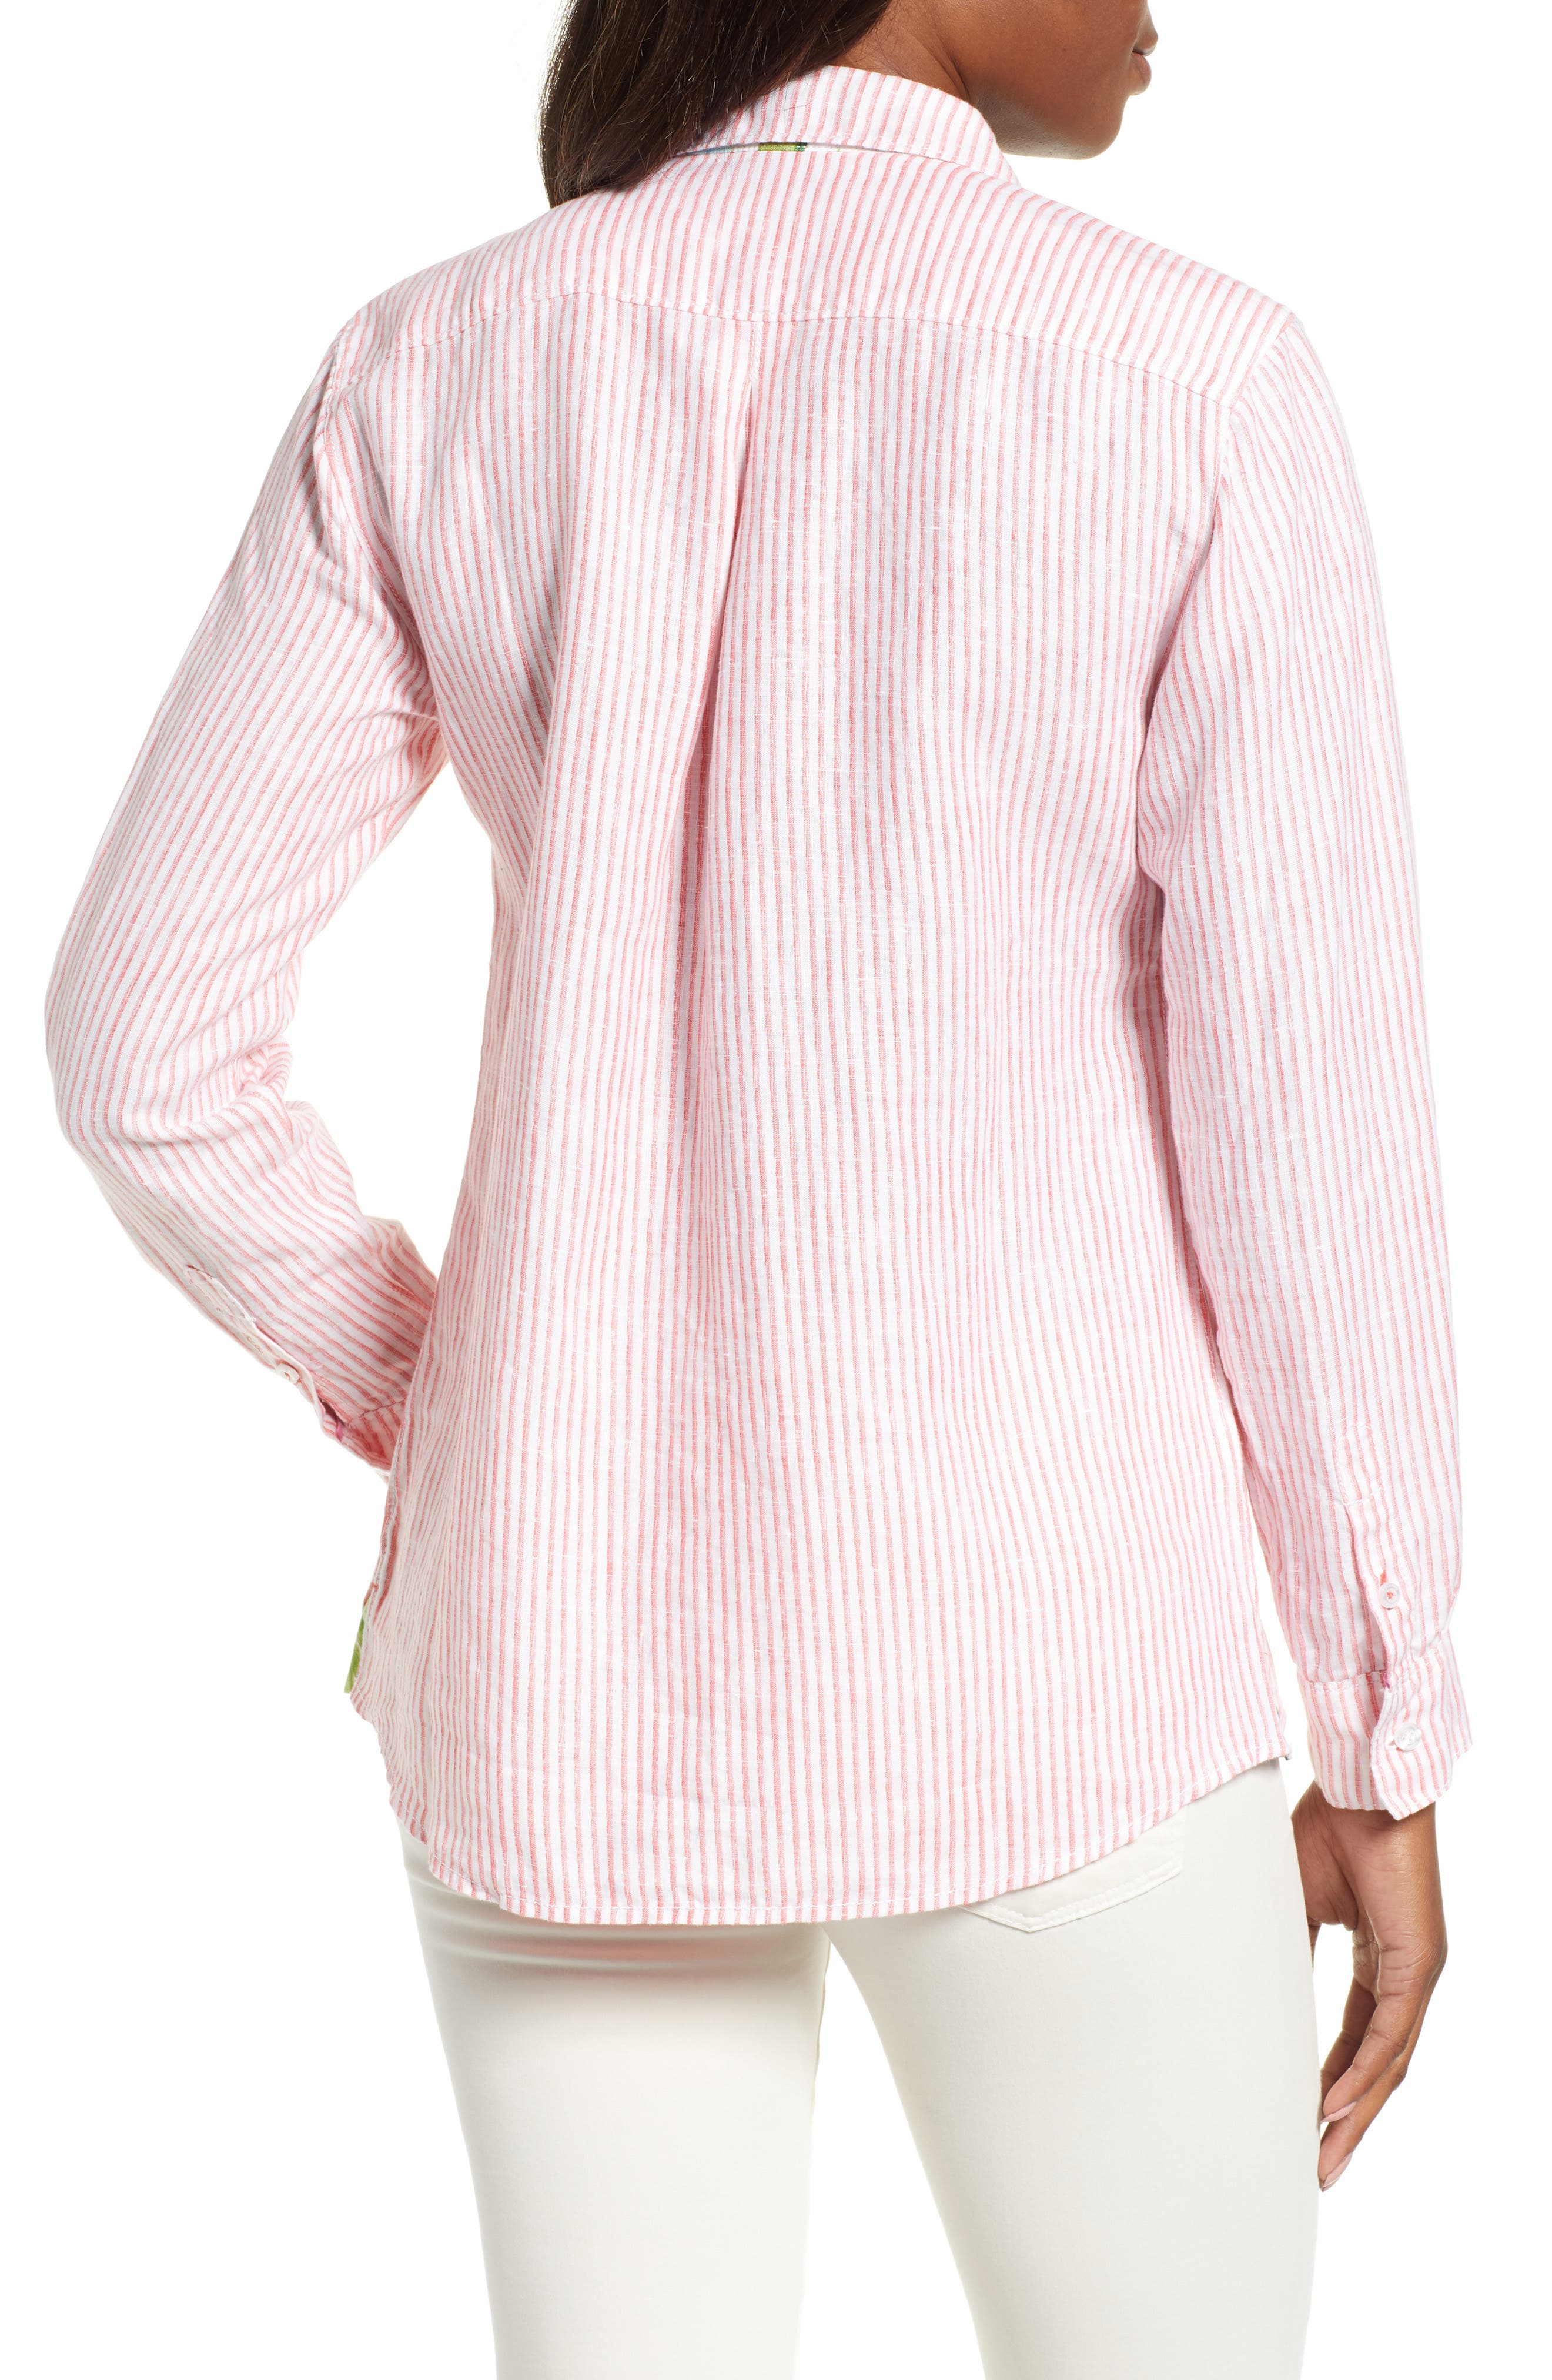 Crystalline Waters Long Sleeve Shirt,                             Alternate thumbnail 2, color,                             DUBARRY CORAL